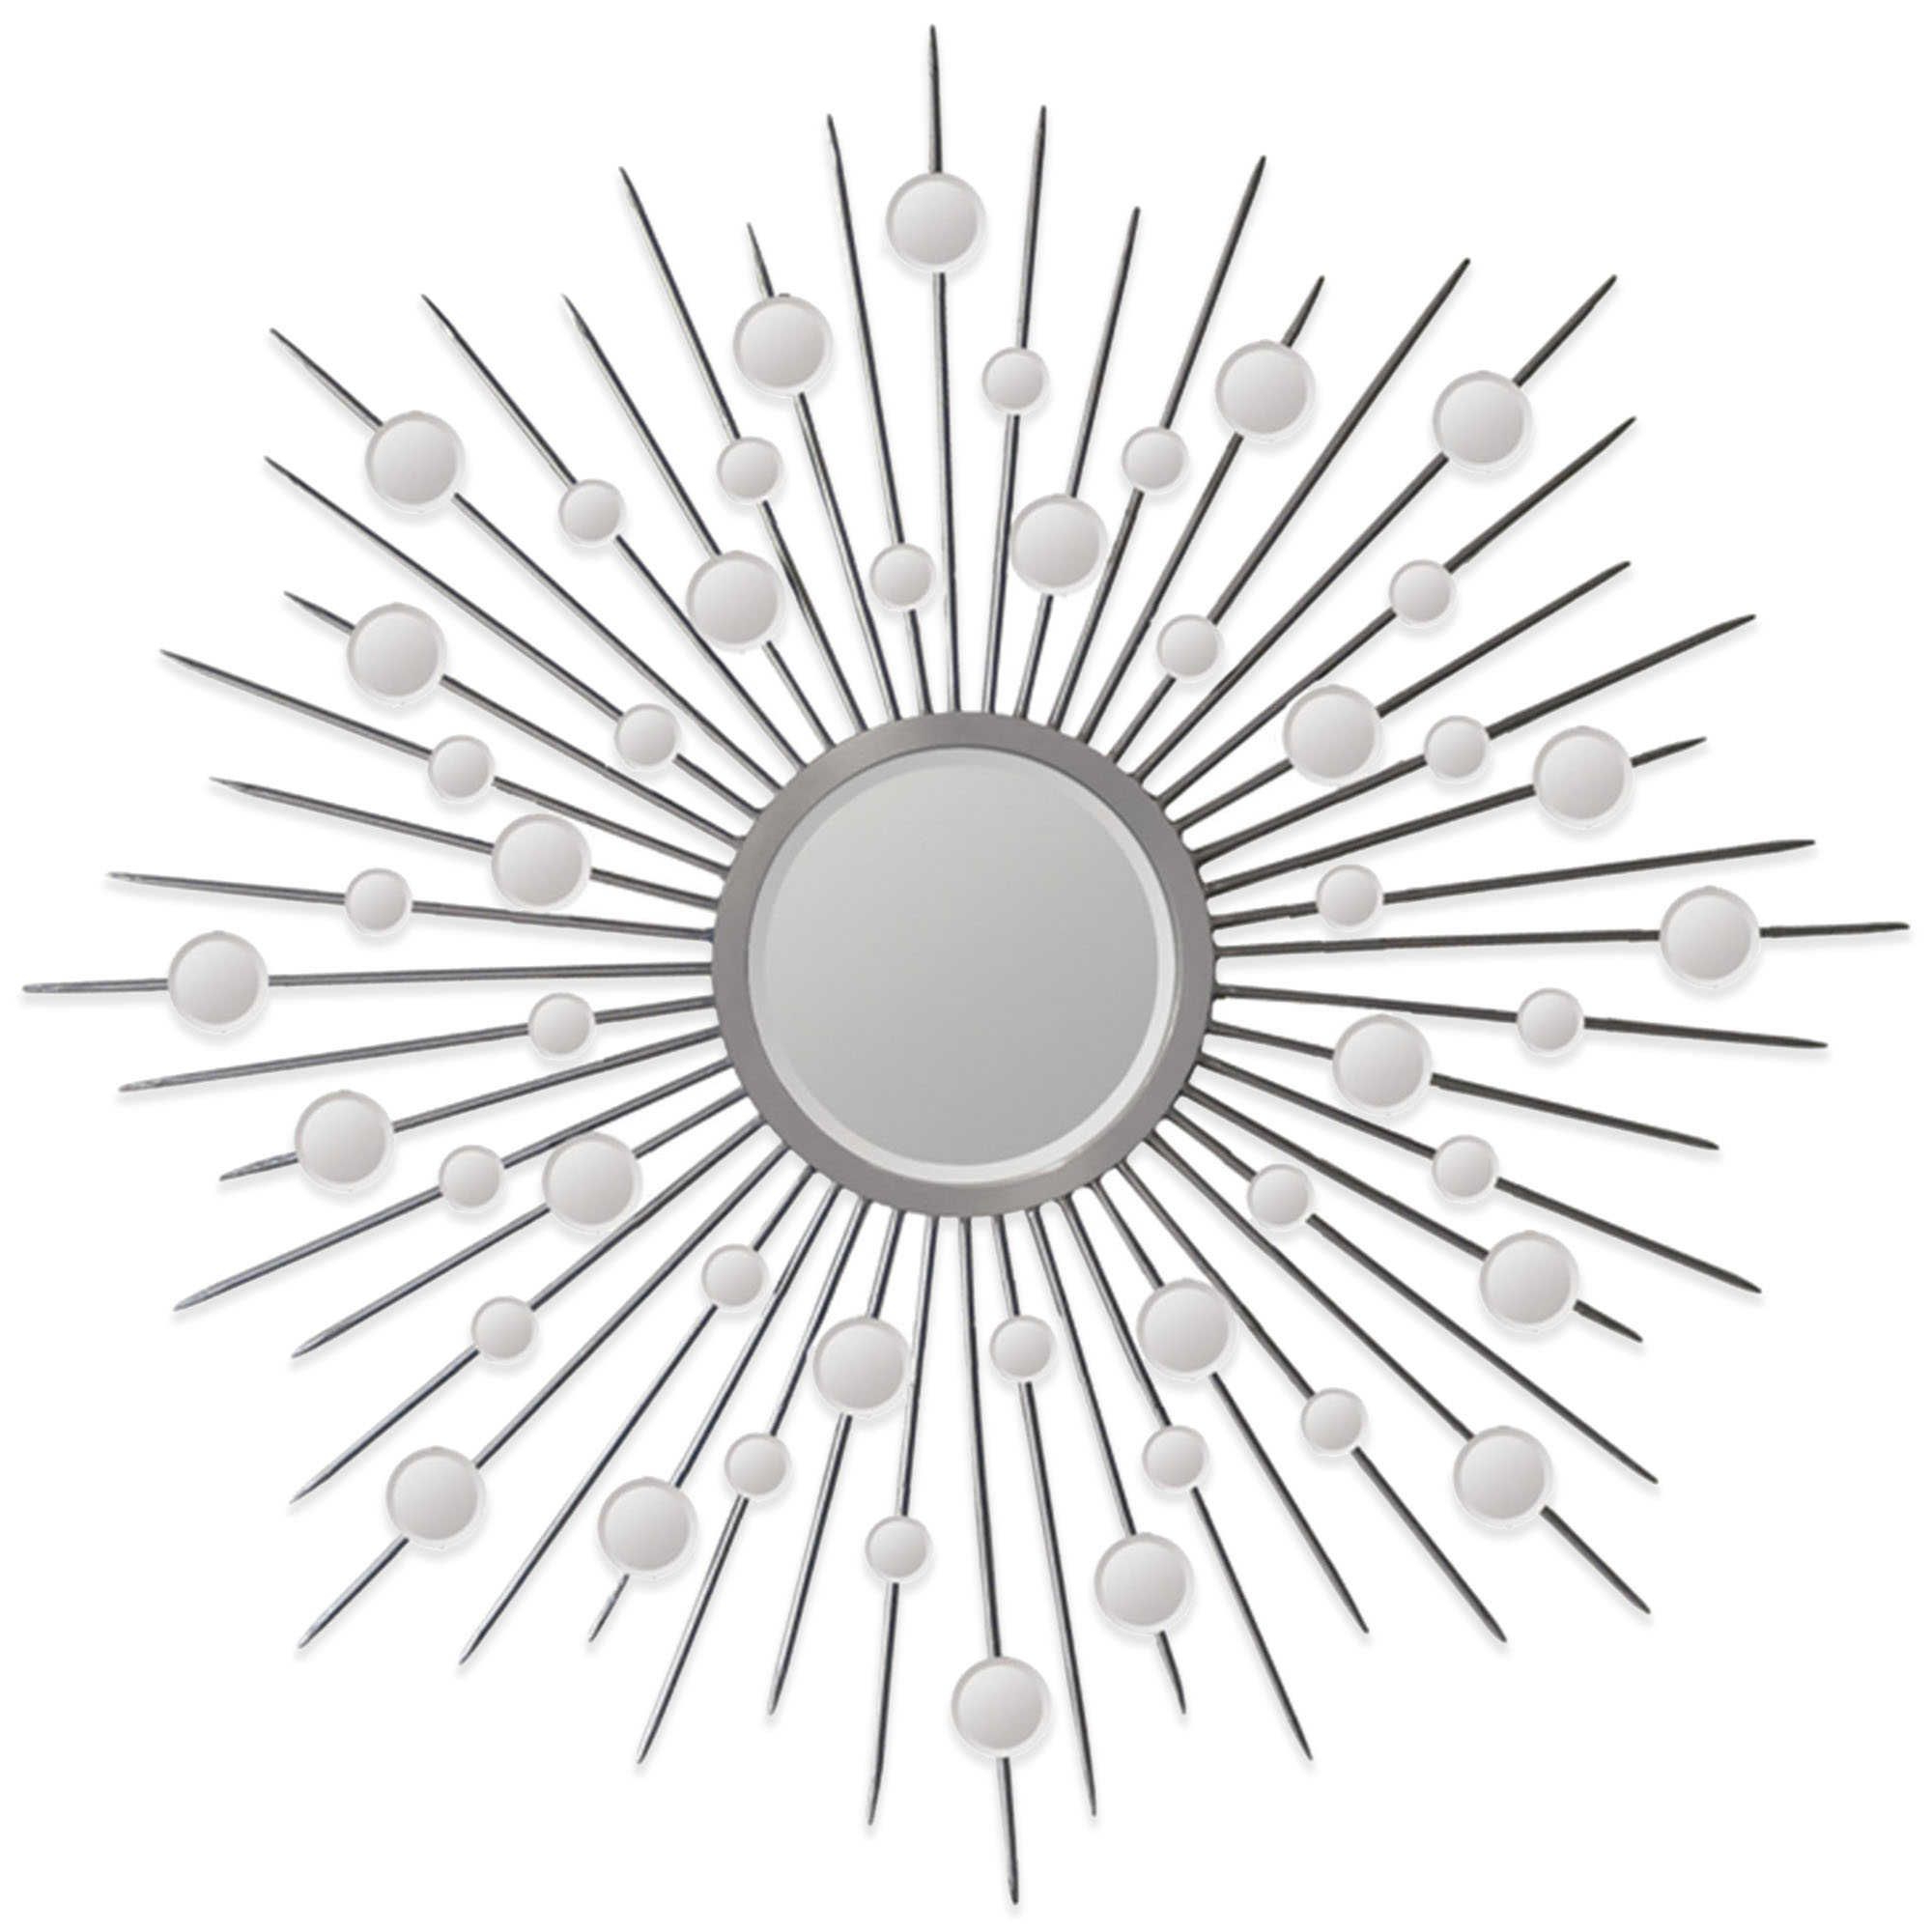 Fashionable Ren Wil 45 Inch X 45 Inch Starburst Onice Mirror In Silver Bed Bath With Estrela Modern Sunburst Metal Wall Mirrors (View 11 of 20)